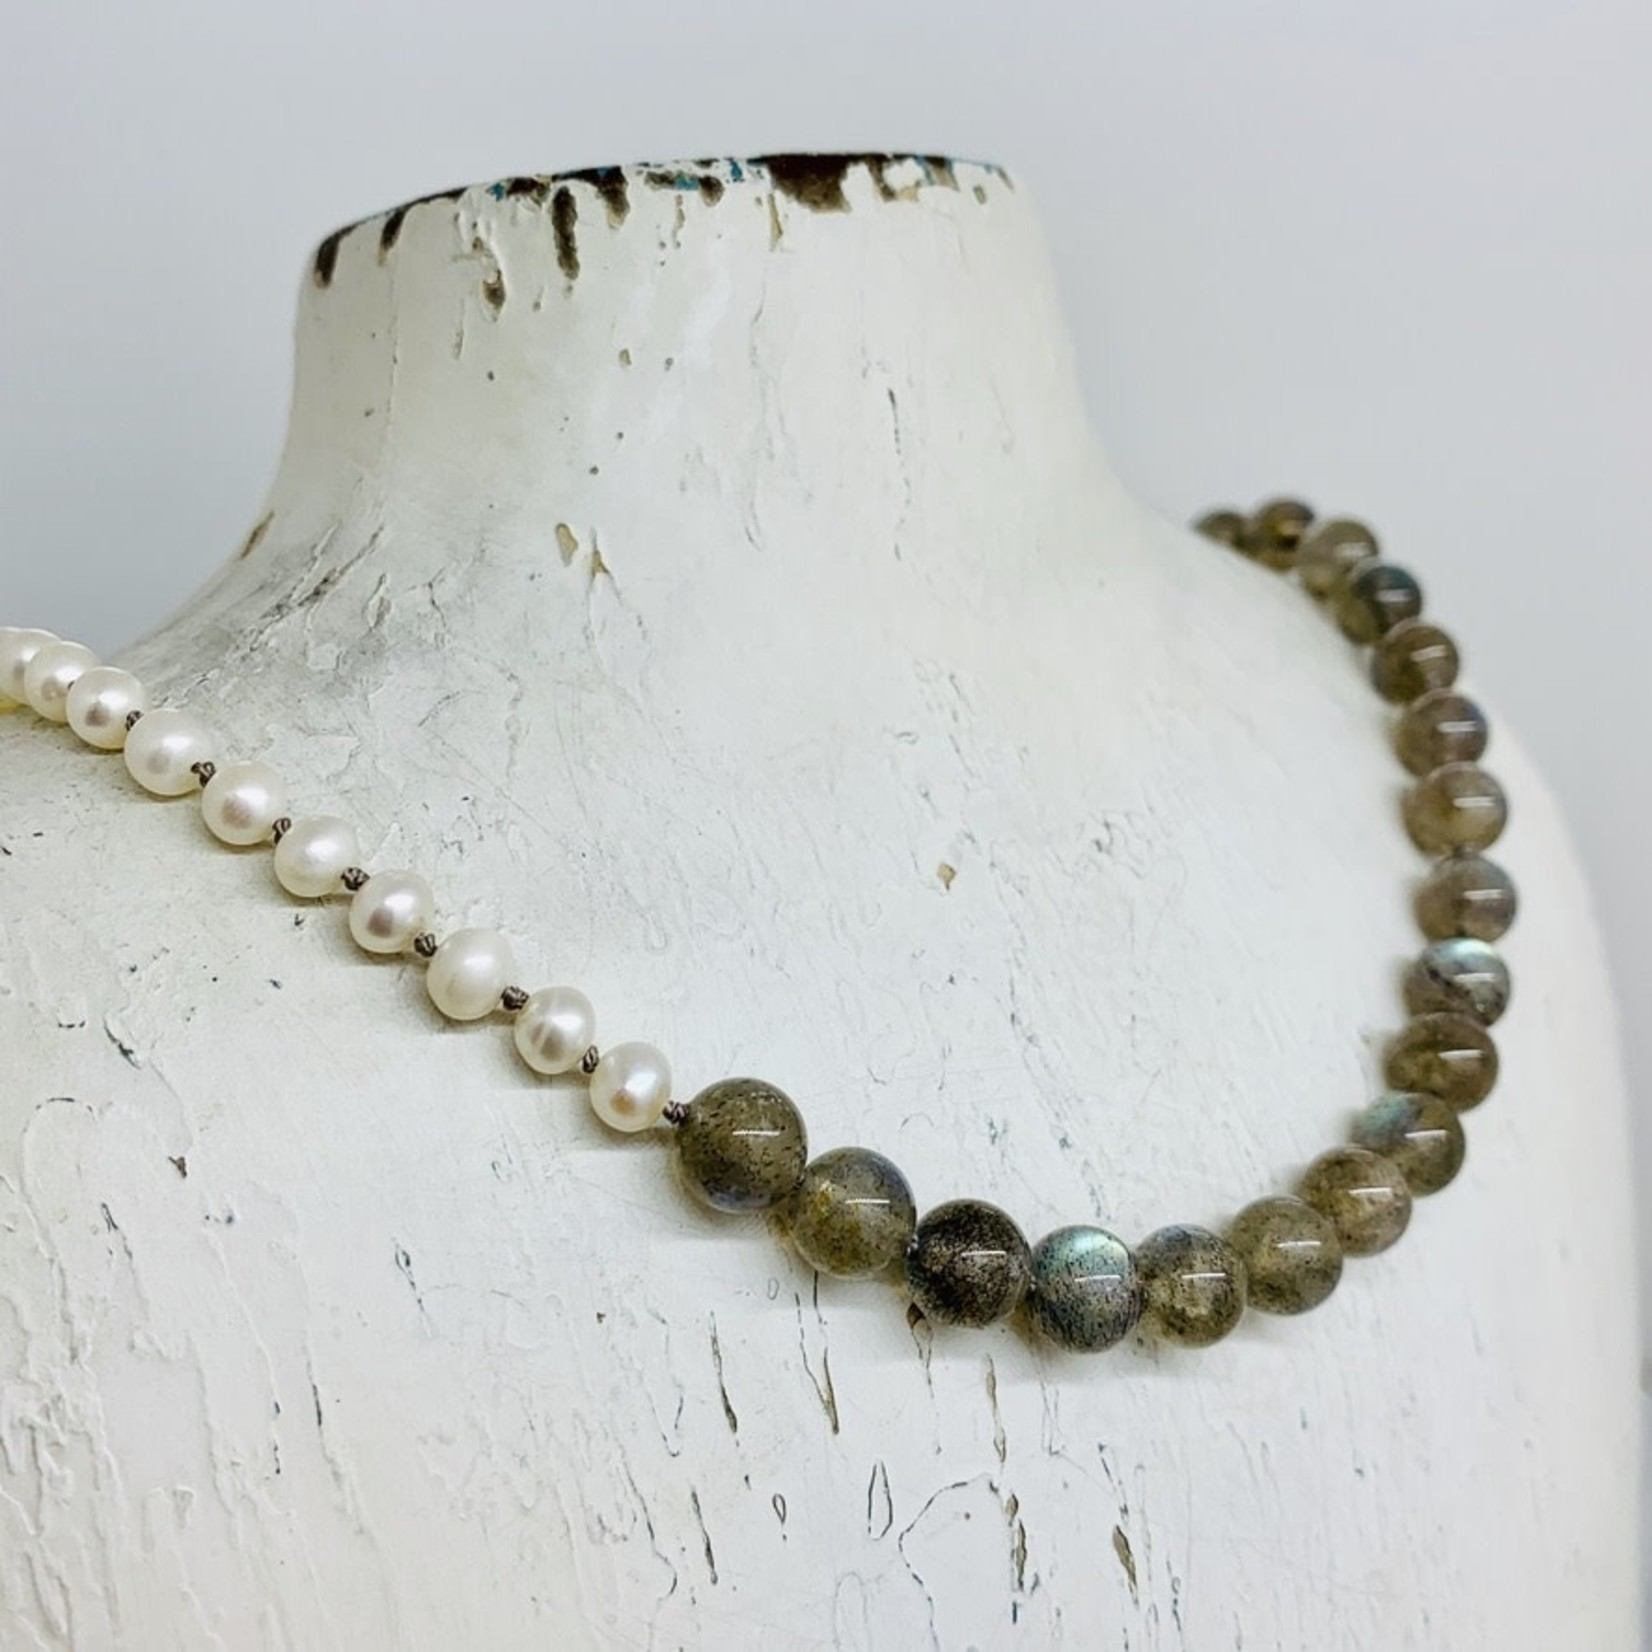 Handmade necklace with labradorite balls, white pearls knotted on grey silk, toggle